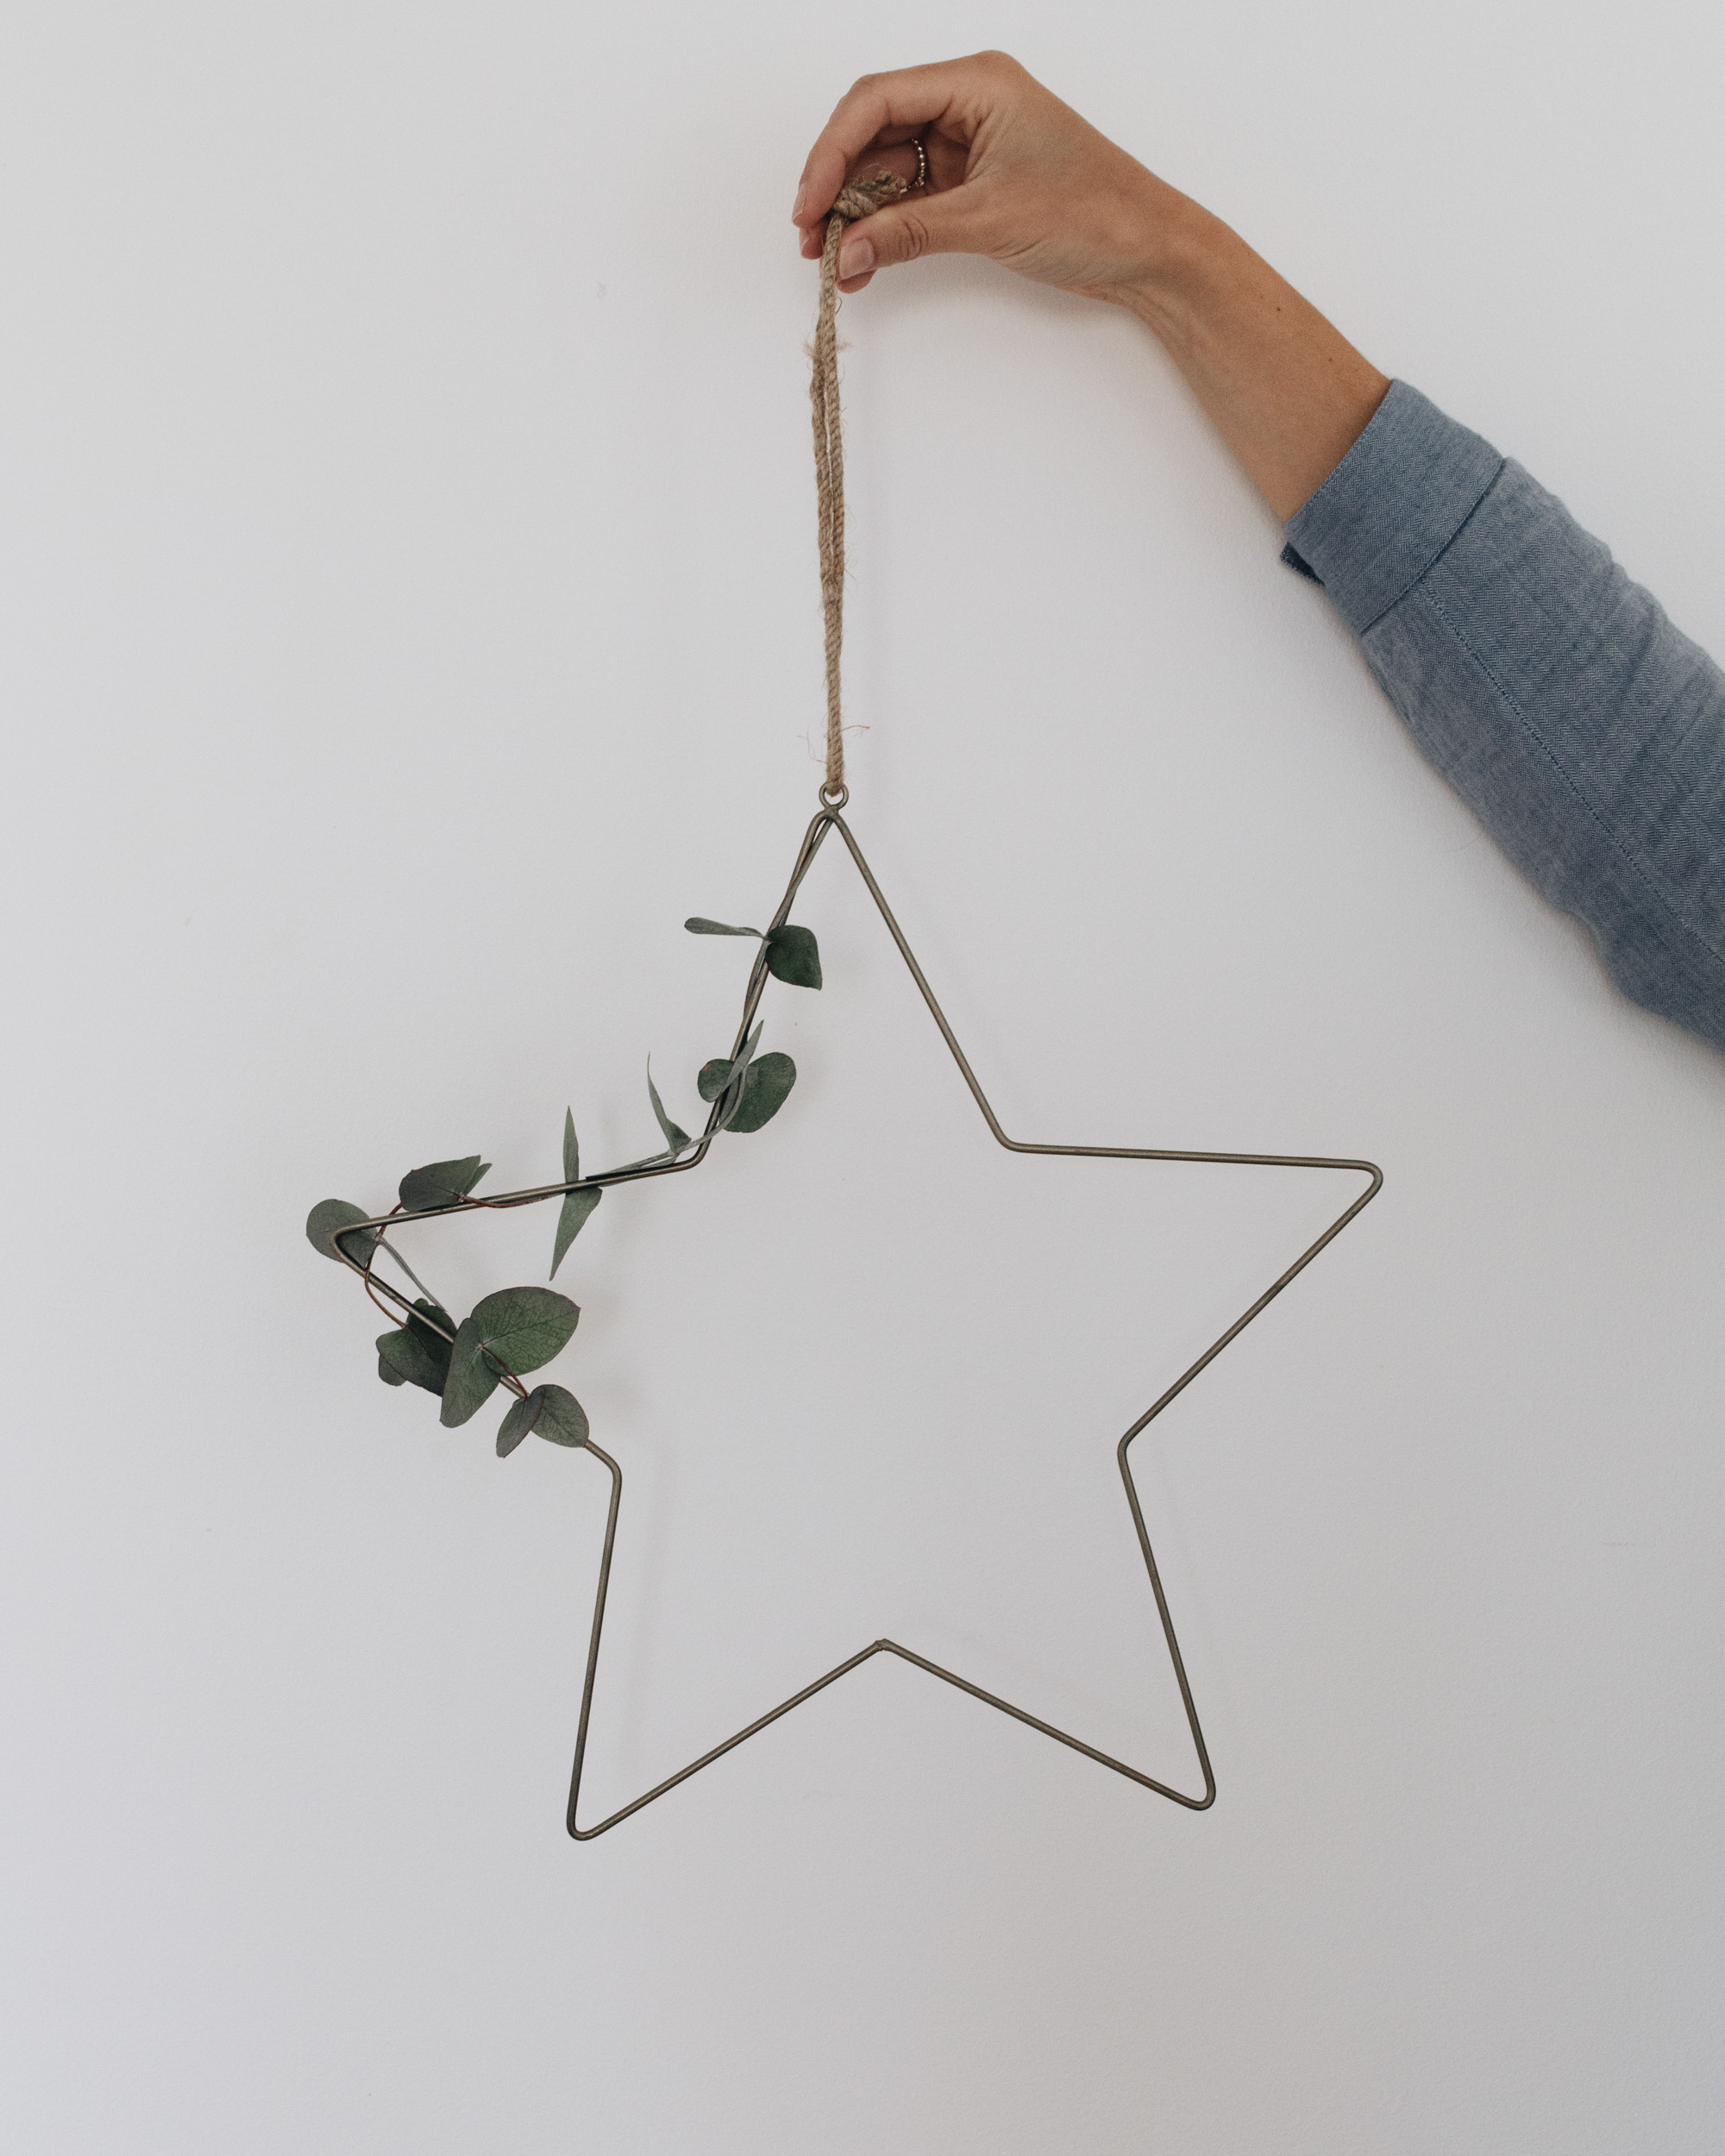 Minimal Christmas decor ideas